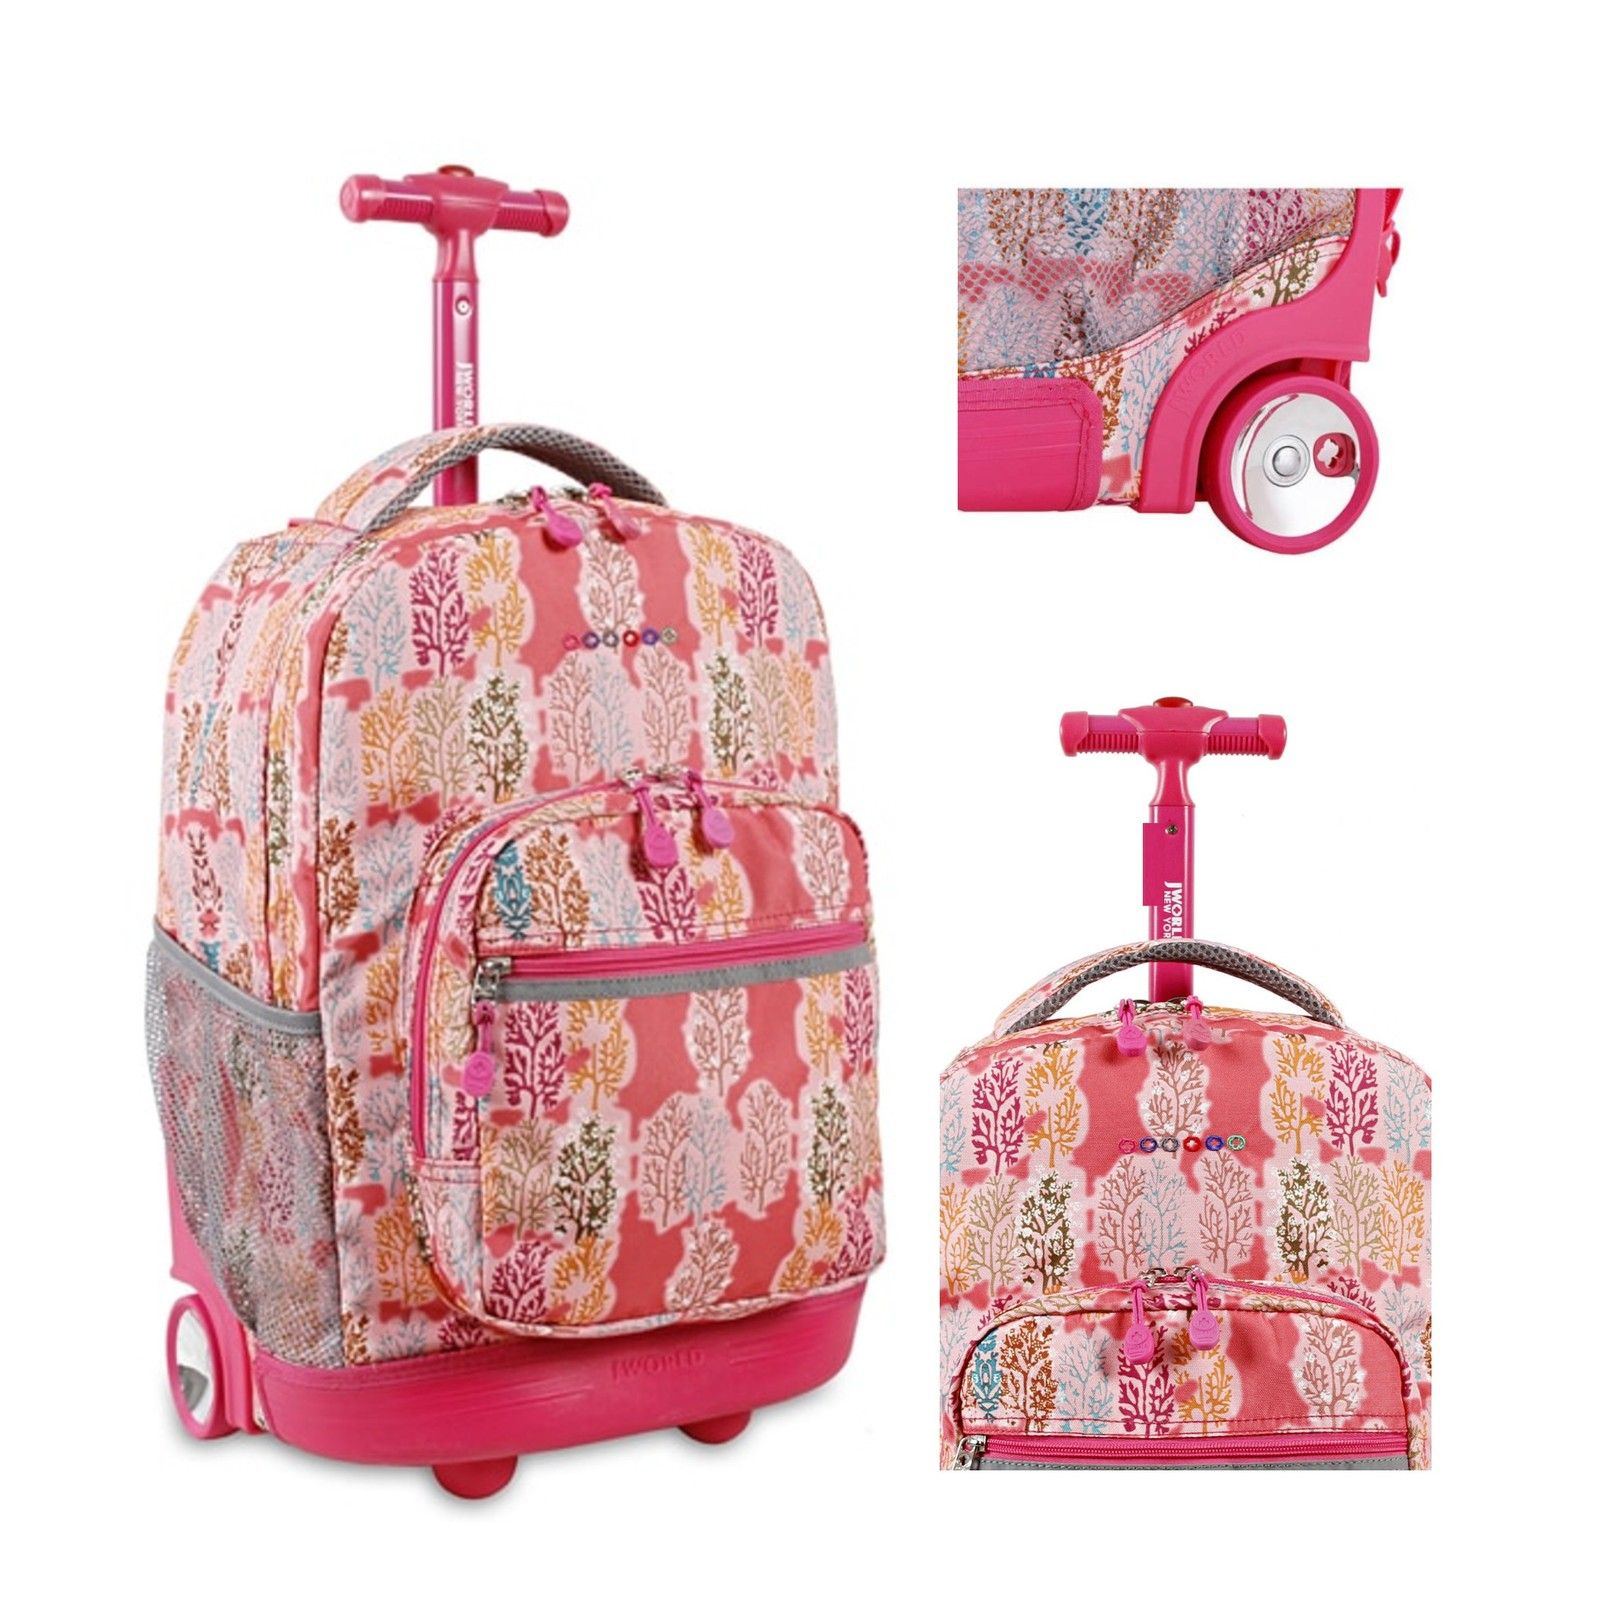 rolling backpack wheeled school student book bag 18 pink carry on